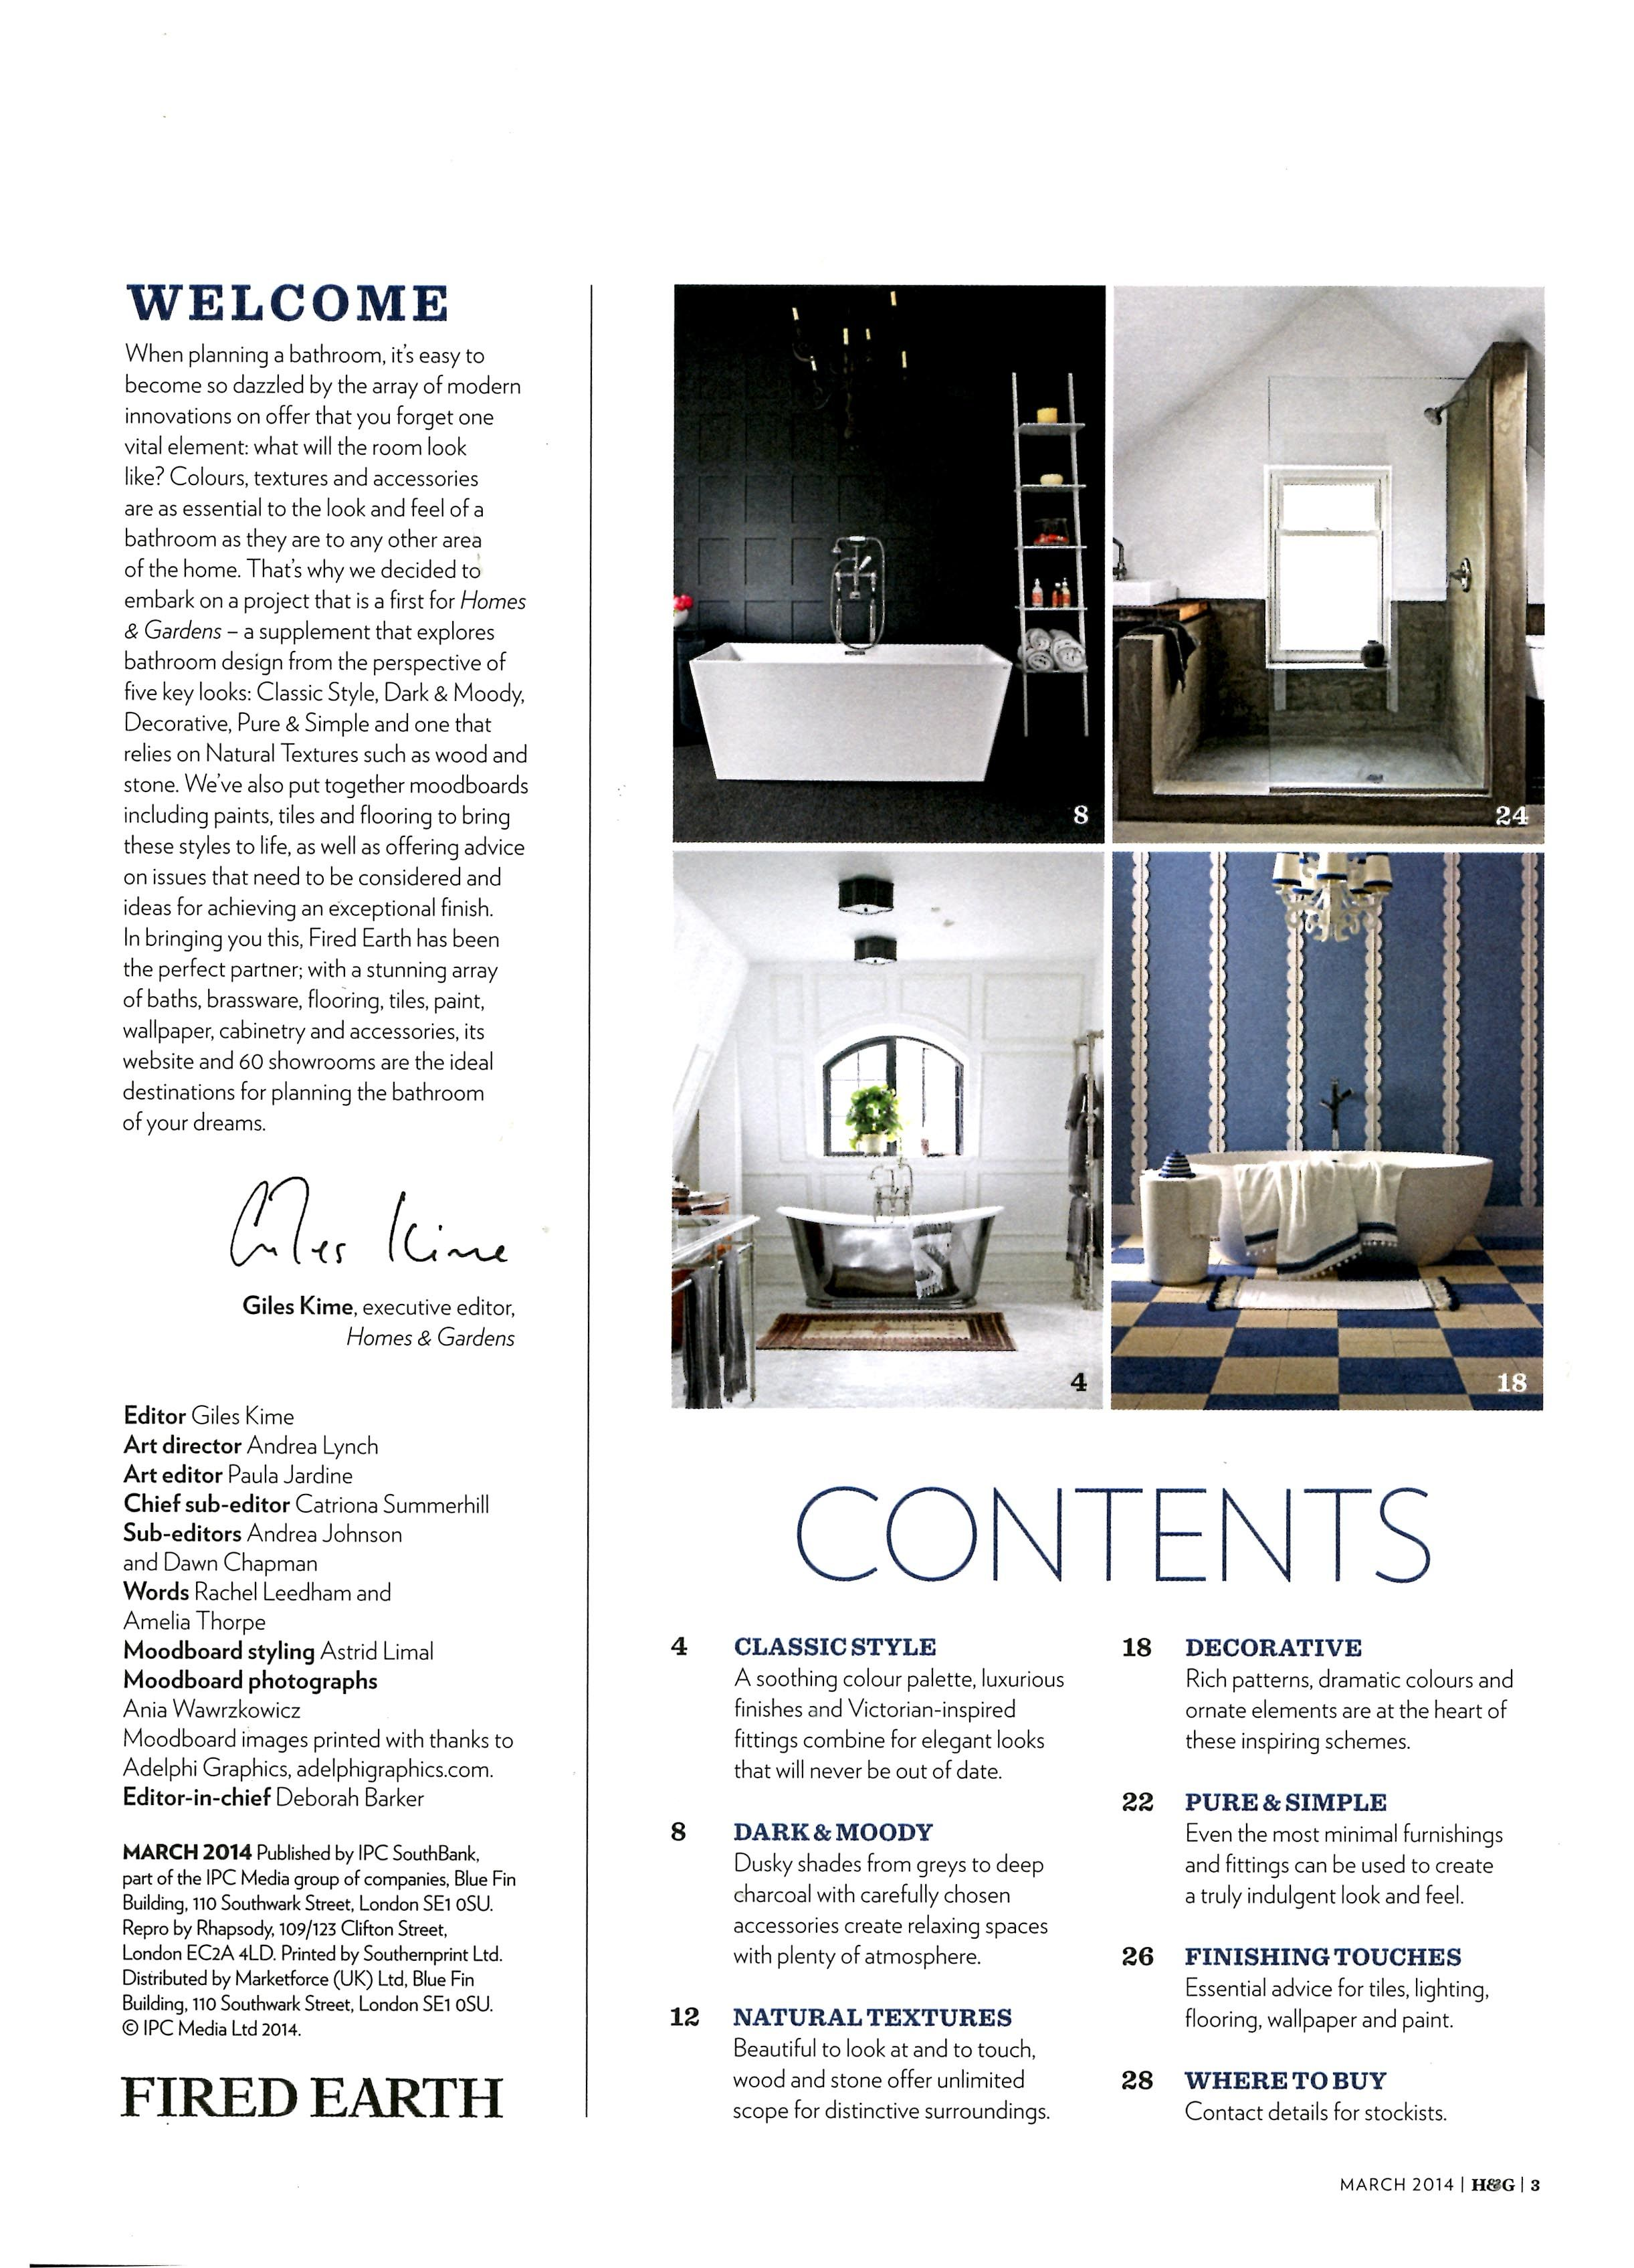 Classic bathroom style from Drummonds http://drummonds-uk.com Homes & Gardens Inspired Bathrooms Supplement March 2014